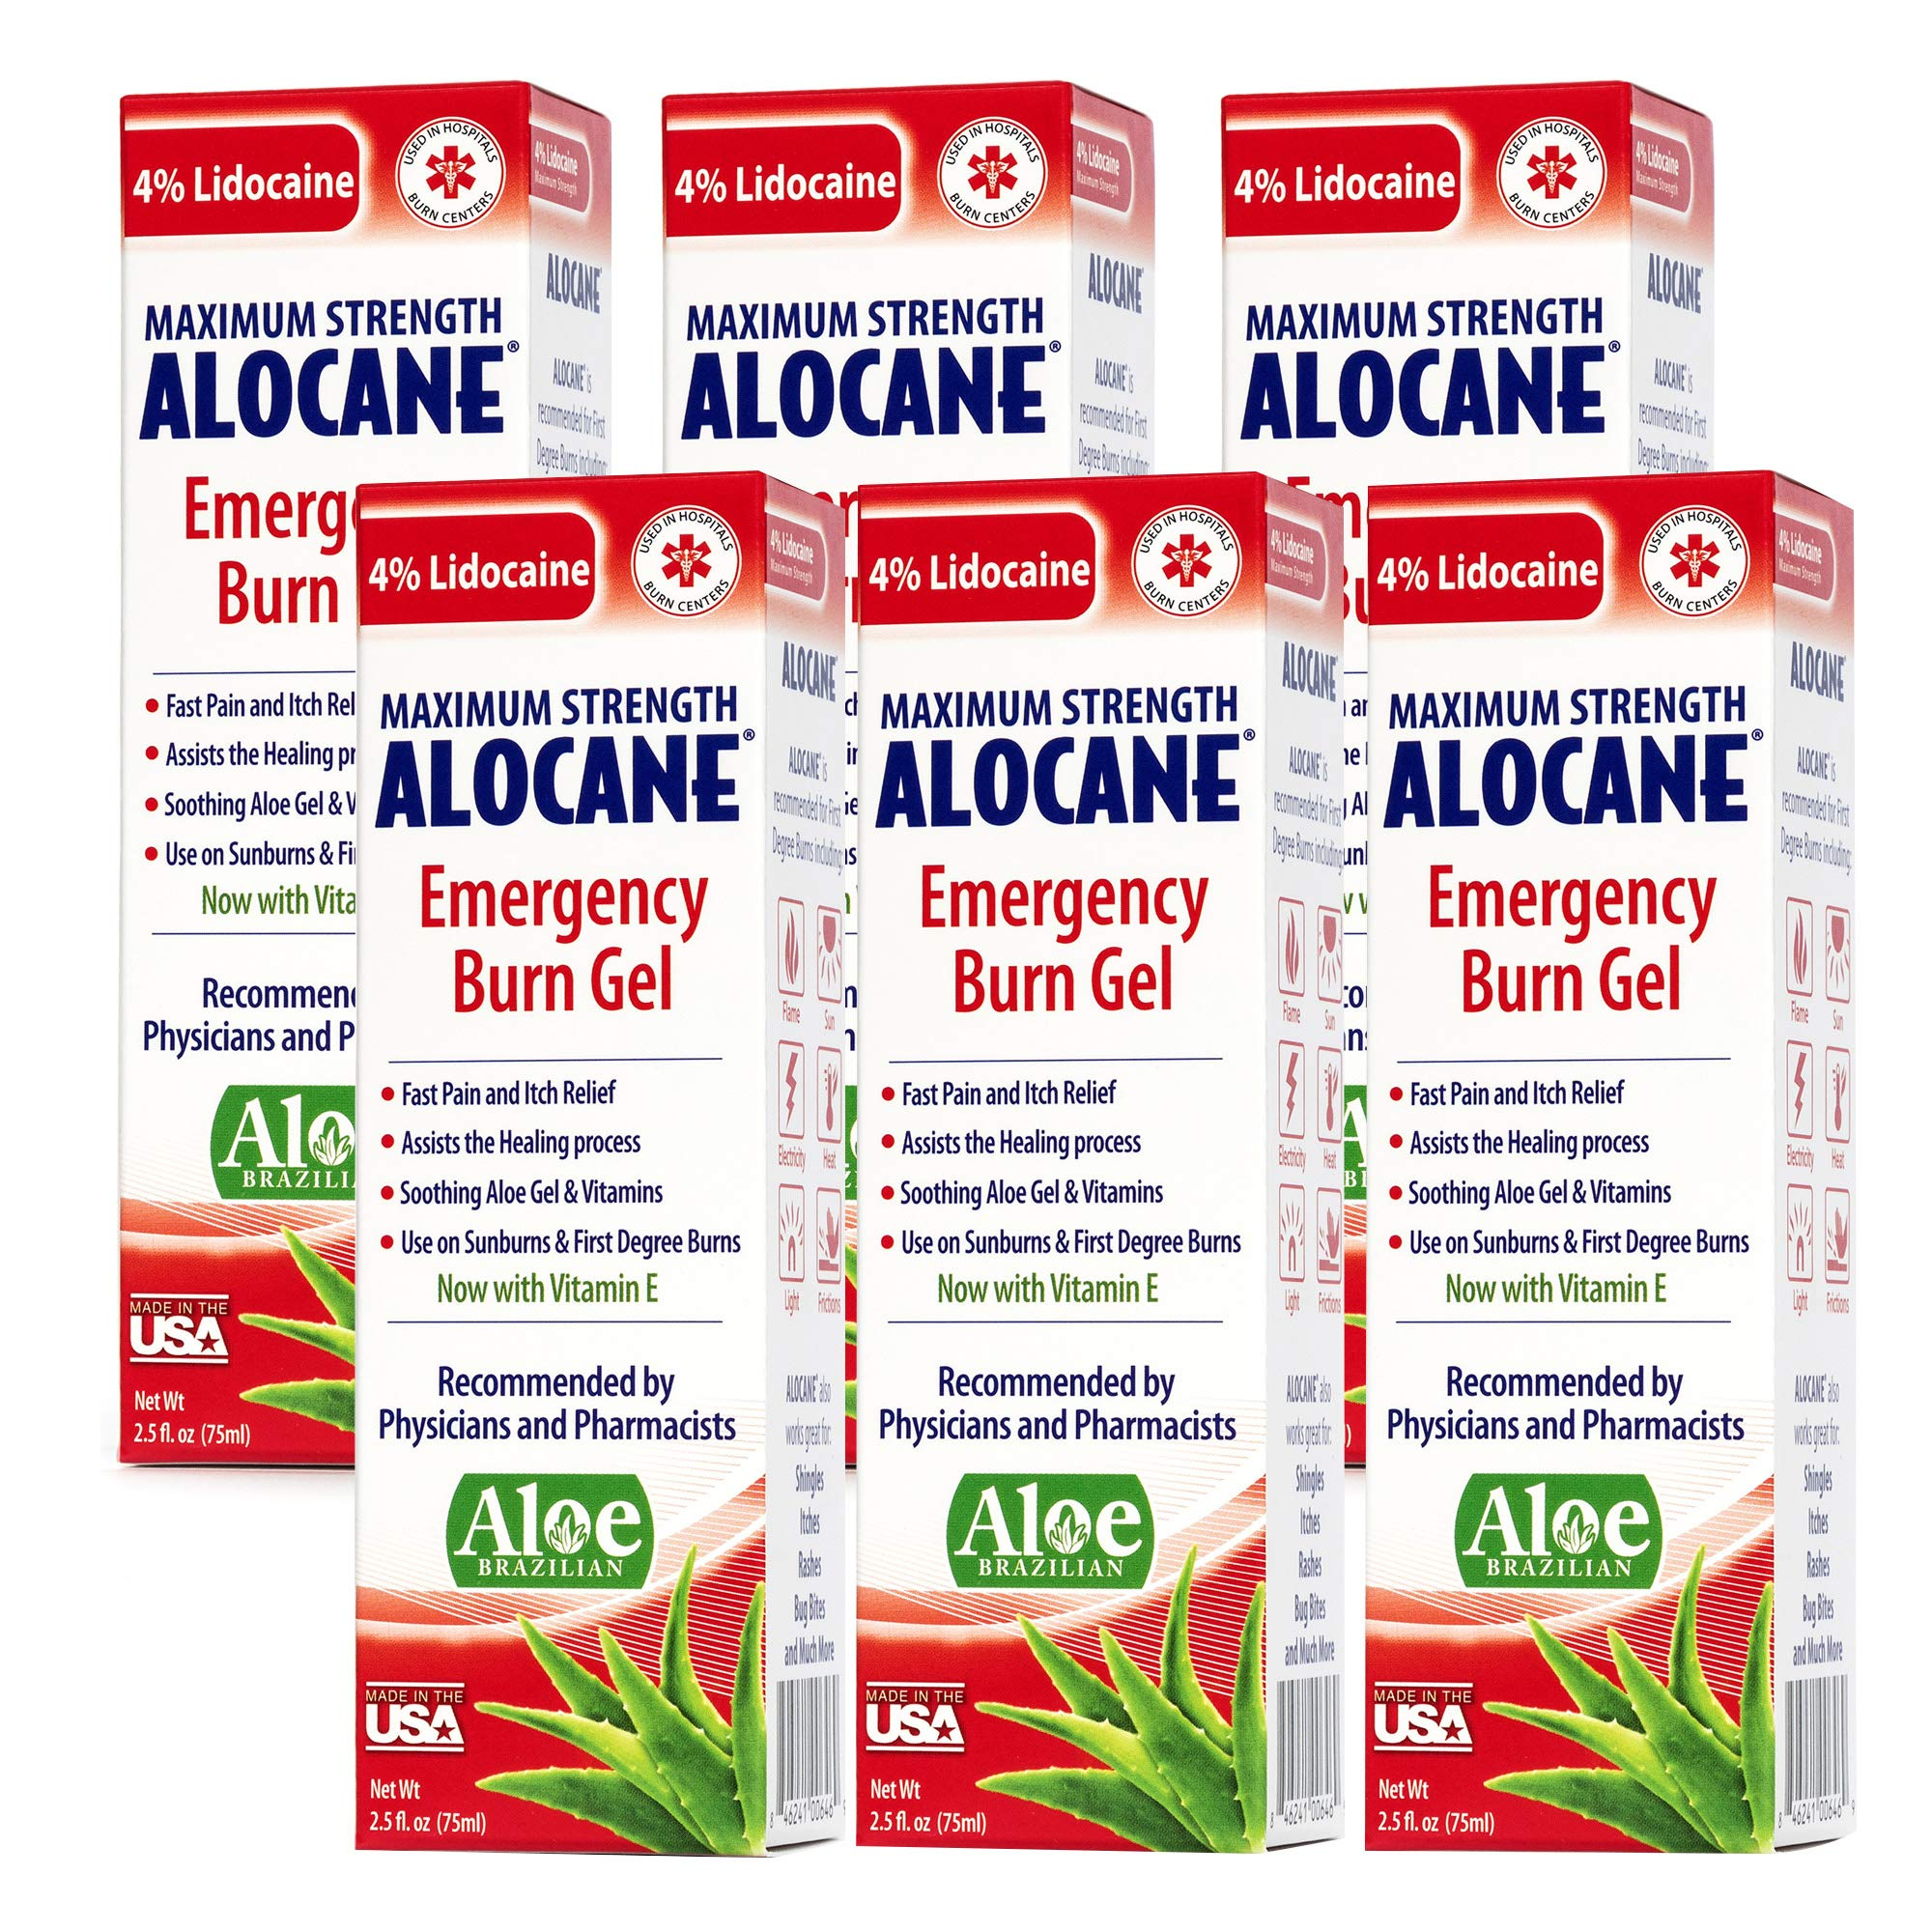 Alocane® Emergency Burn Gel 6 Pack, 4% Lidocaine Max Strength Fast Pain Itch Relief for Minor Burns, Sunburn, Kitchen, Radiation, Chemical, First Degree Burns, First Aid Treatment Burn Care 2.5 Fl Oz by Alocane